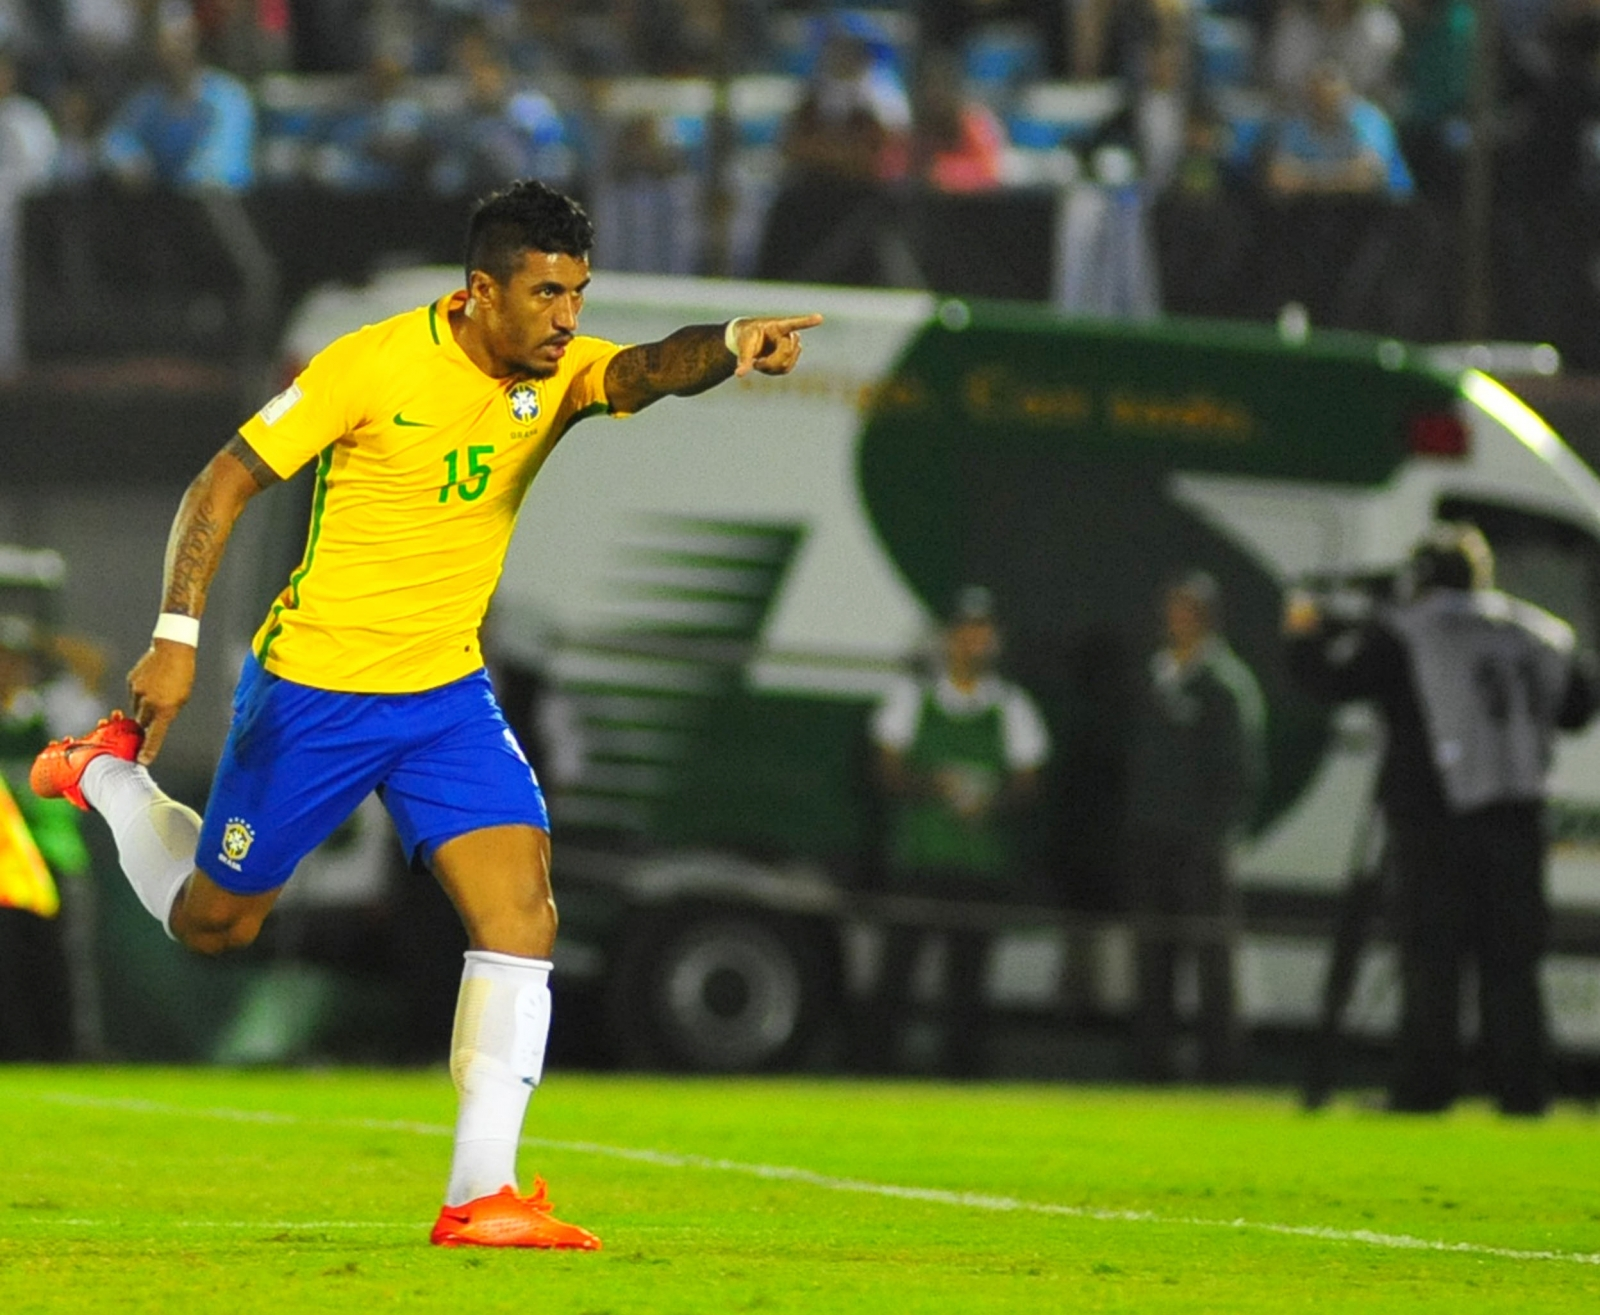 Paulinho unlikely to complete Barcelona move: Scolari